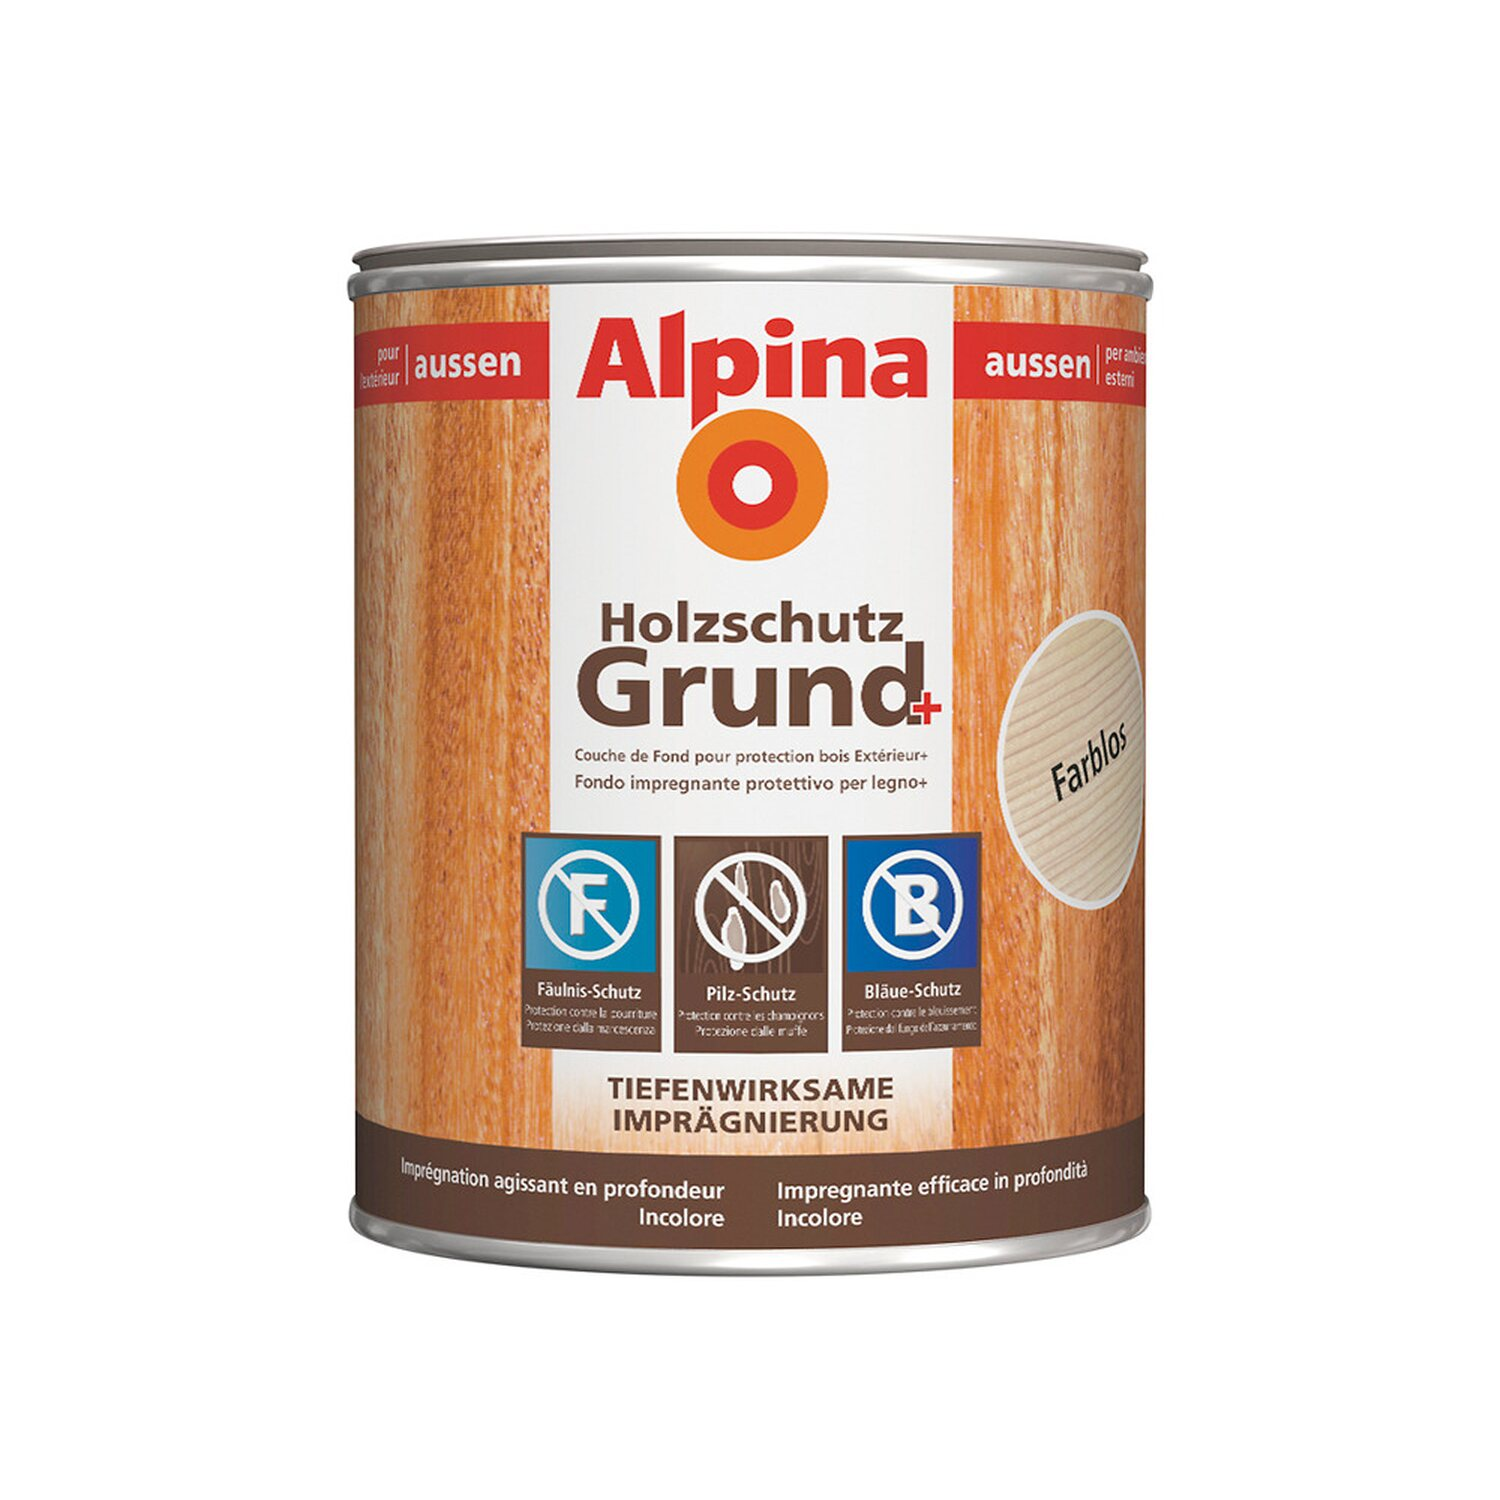 Alpina Holzschutz Grund Plus Transparent 2,5 l